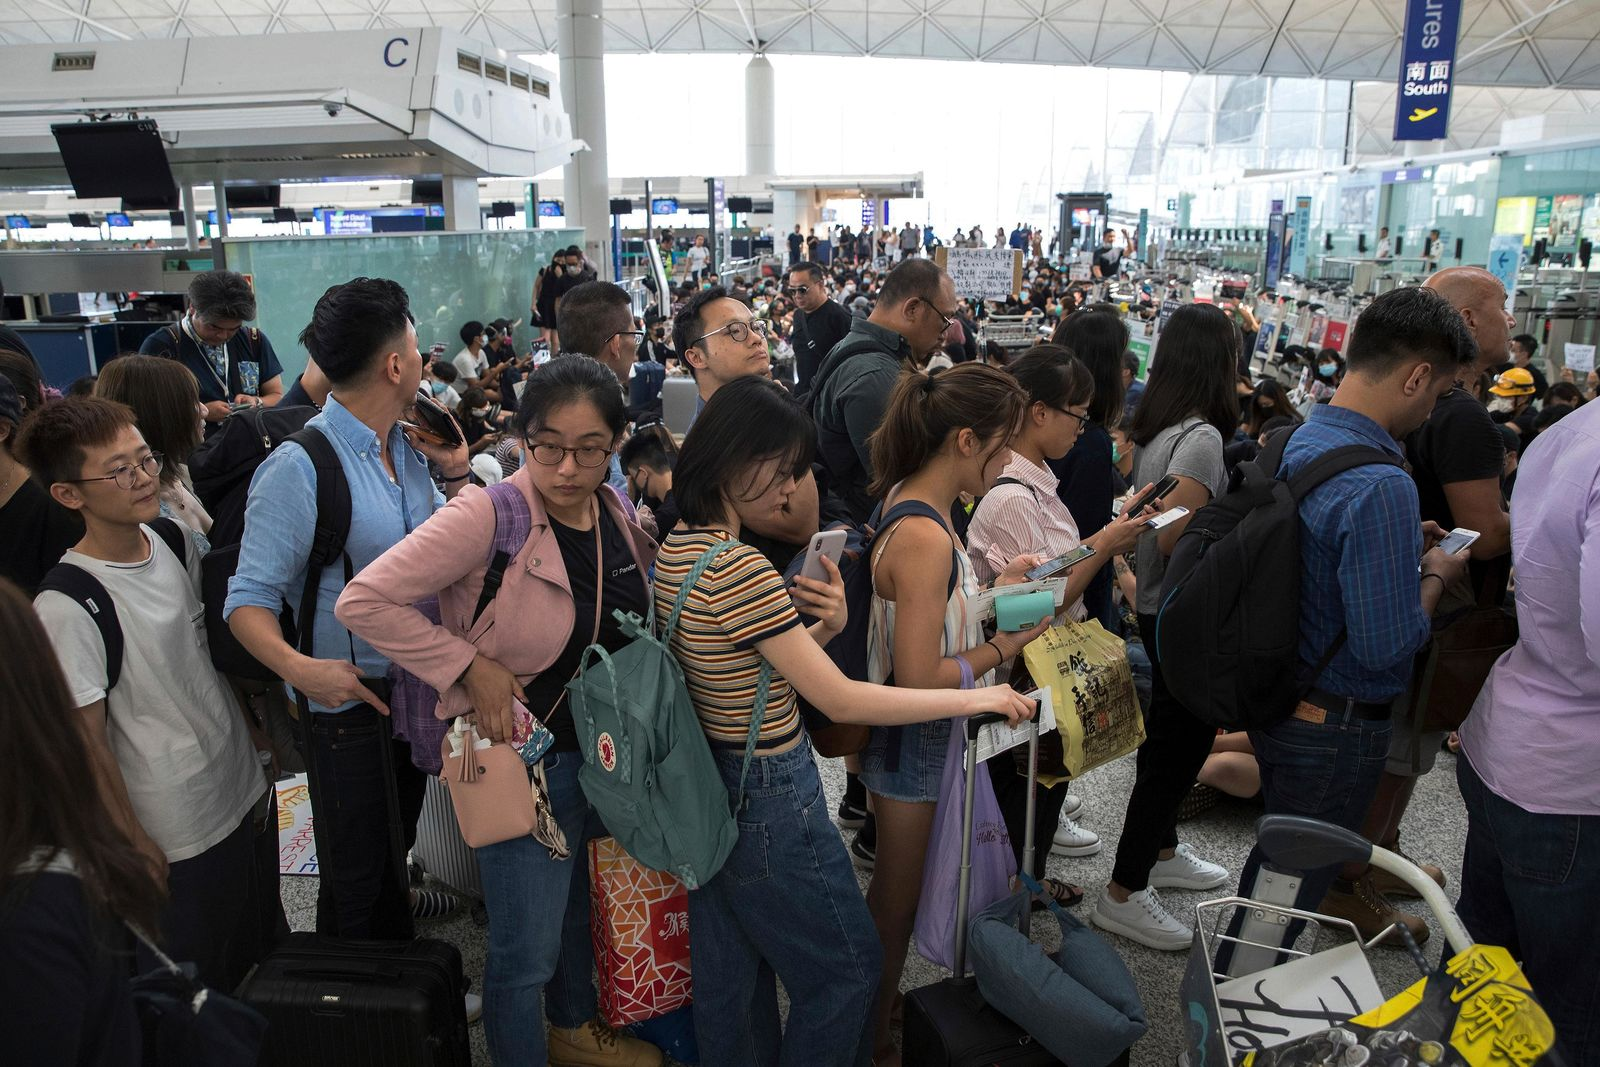 Travelers line up as protesters hold a sit-in rally at the departure gate of the Hong Kong International Airport in Hong Kong, Tuesday, Aug. 13, 2019. . (AP Photo/Vincent Thian)